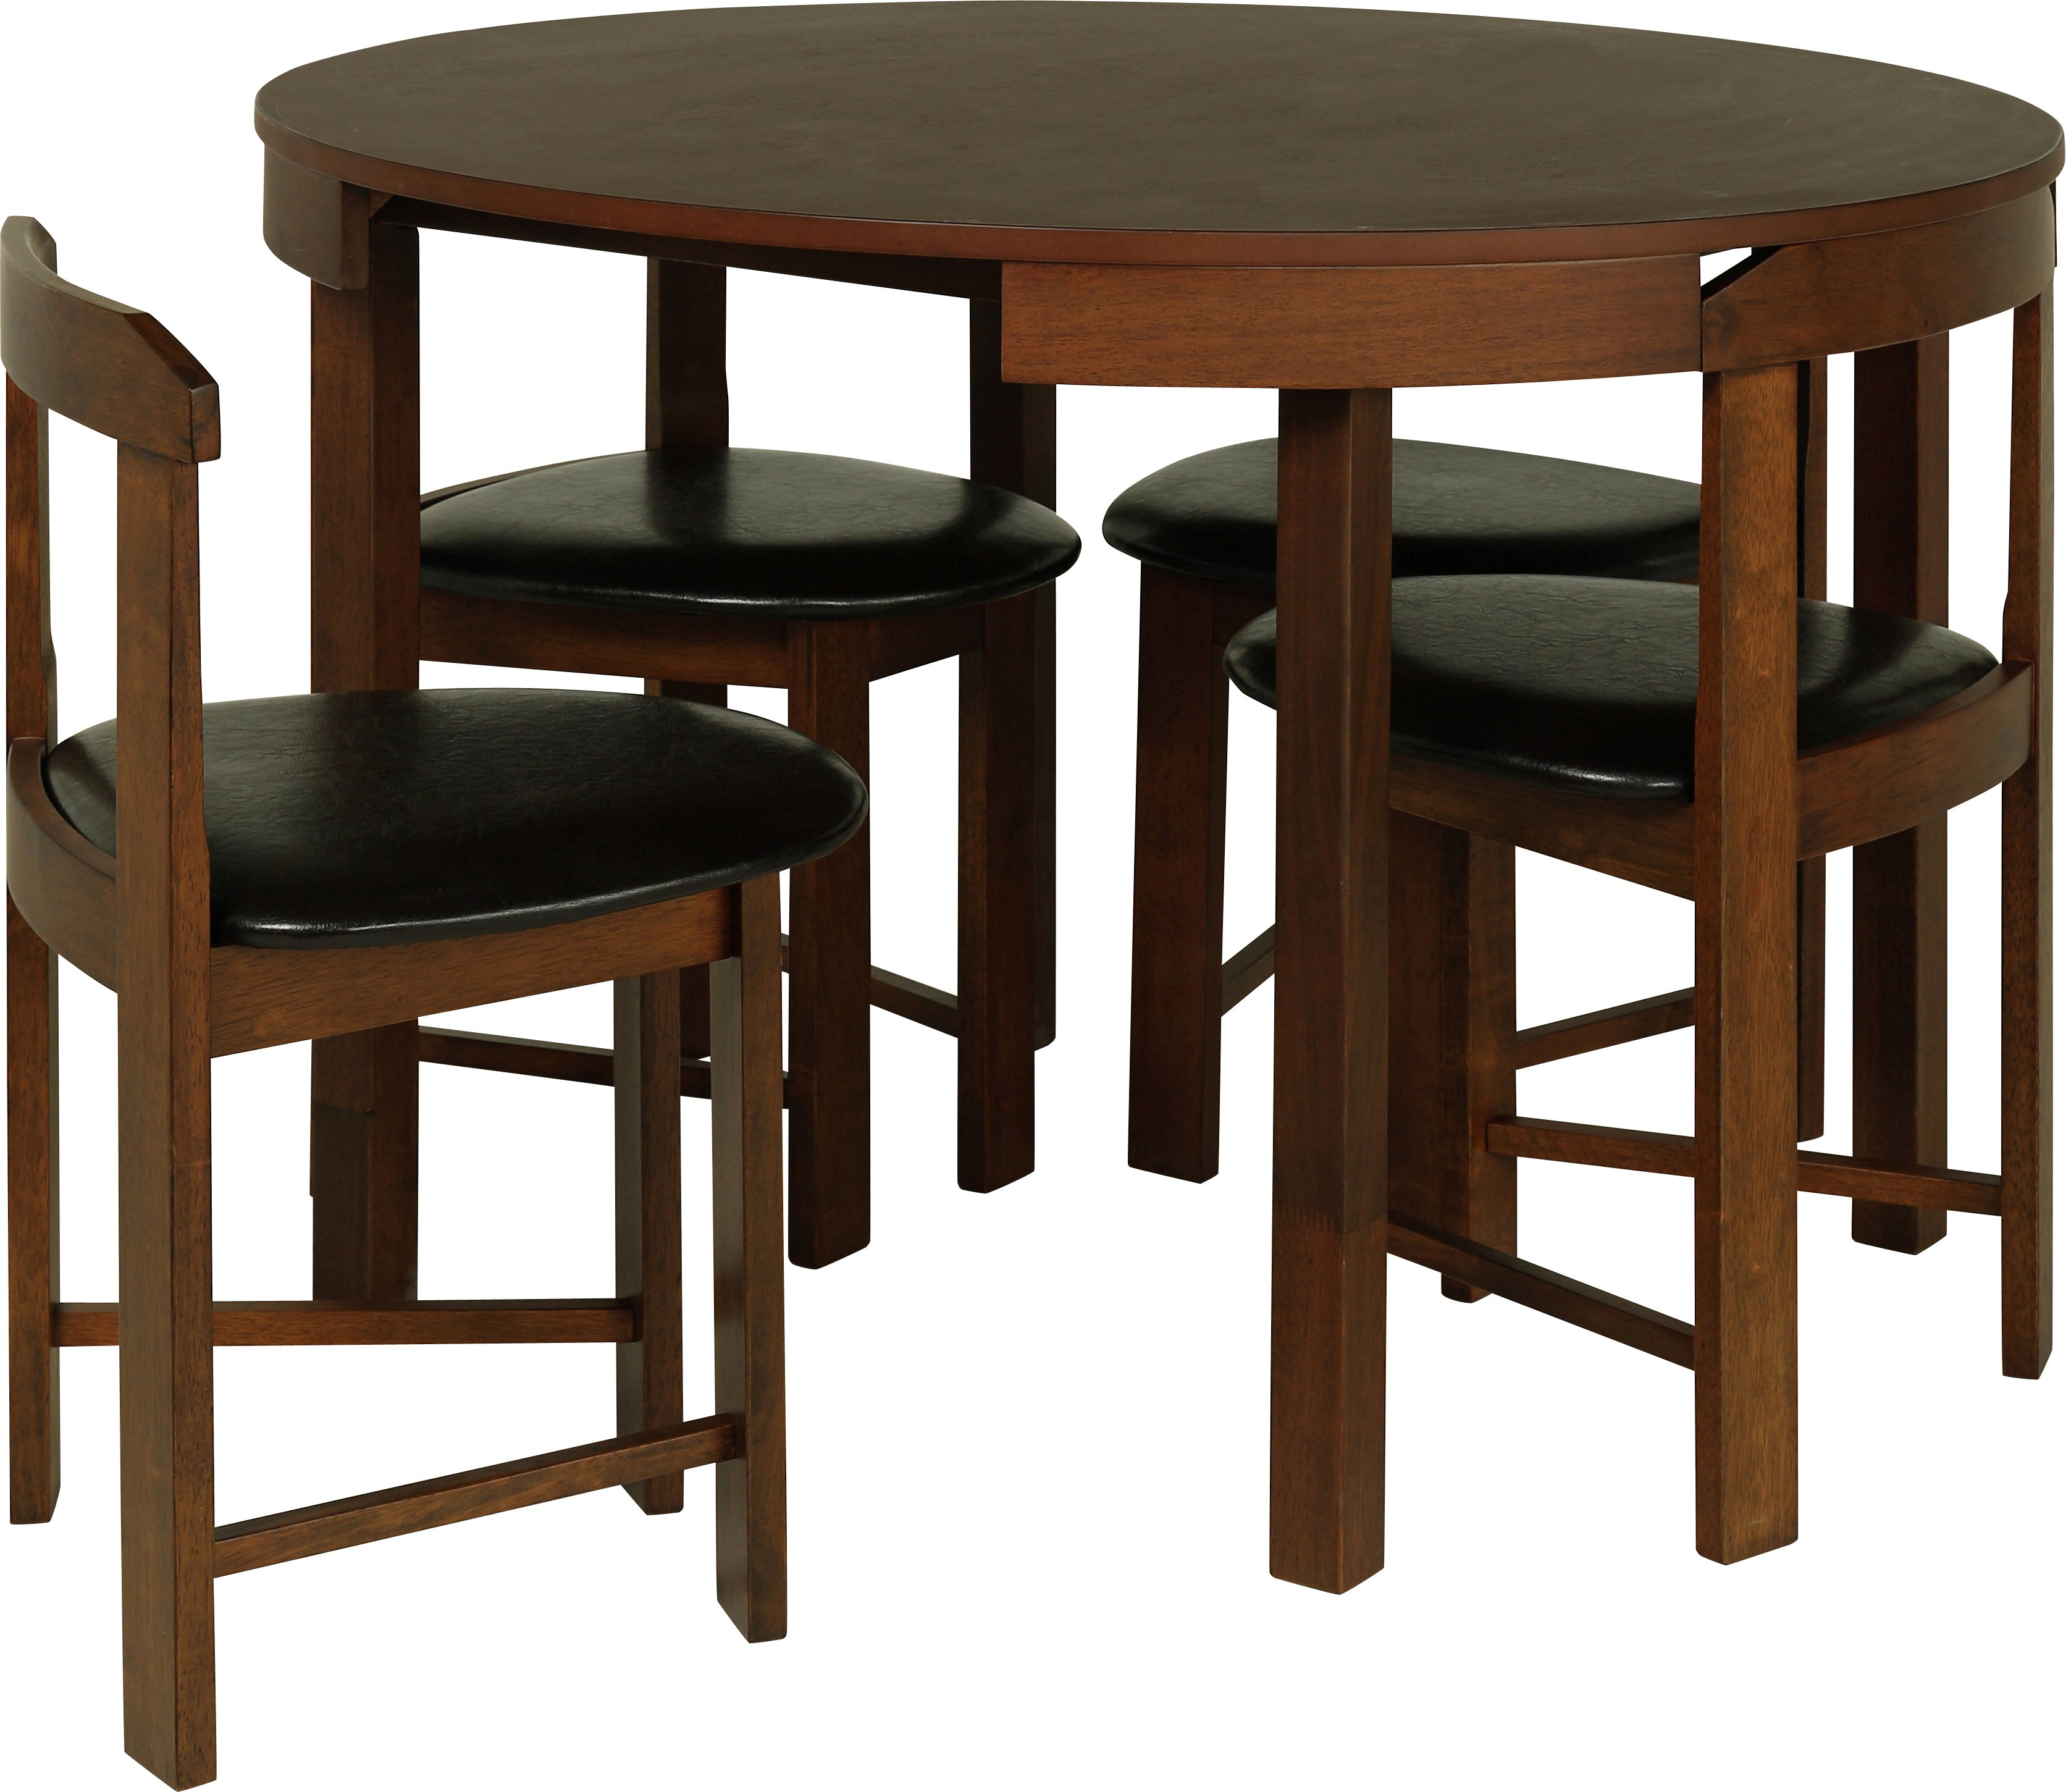 Hygena alena circular solid wood table 4 chairs octer for 99 normal table